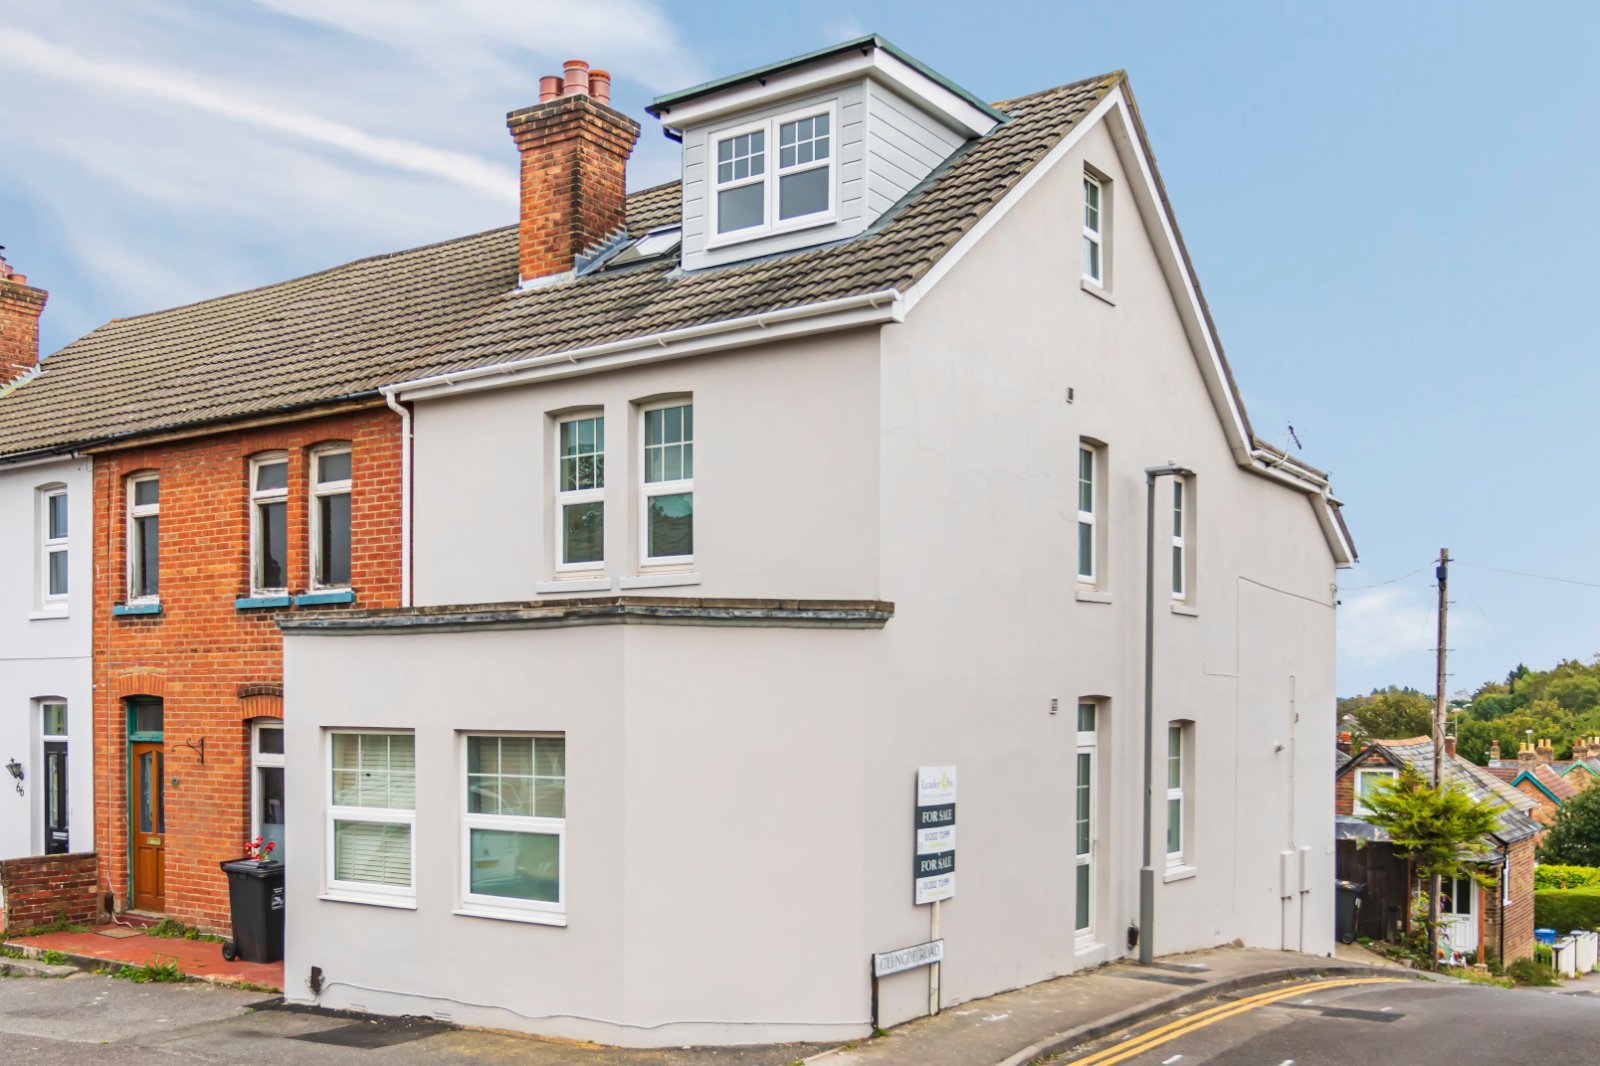 1 bed apartment for sale in Poole 0